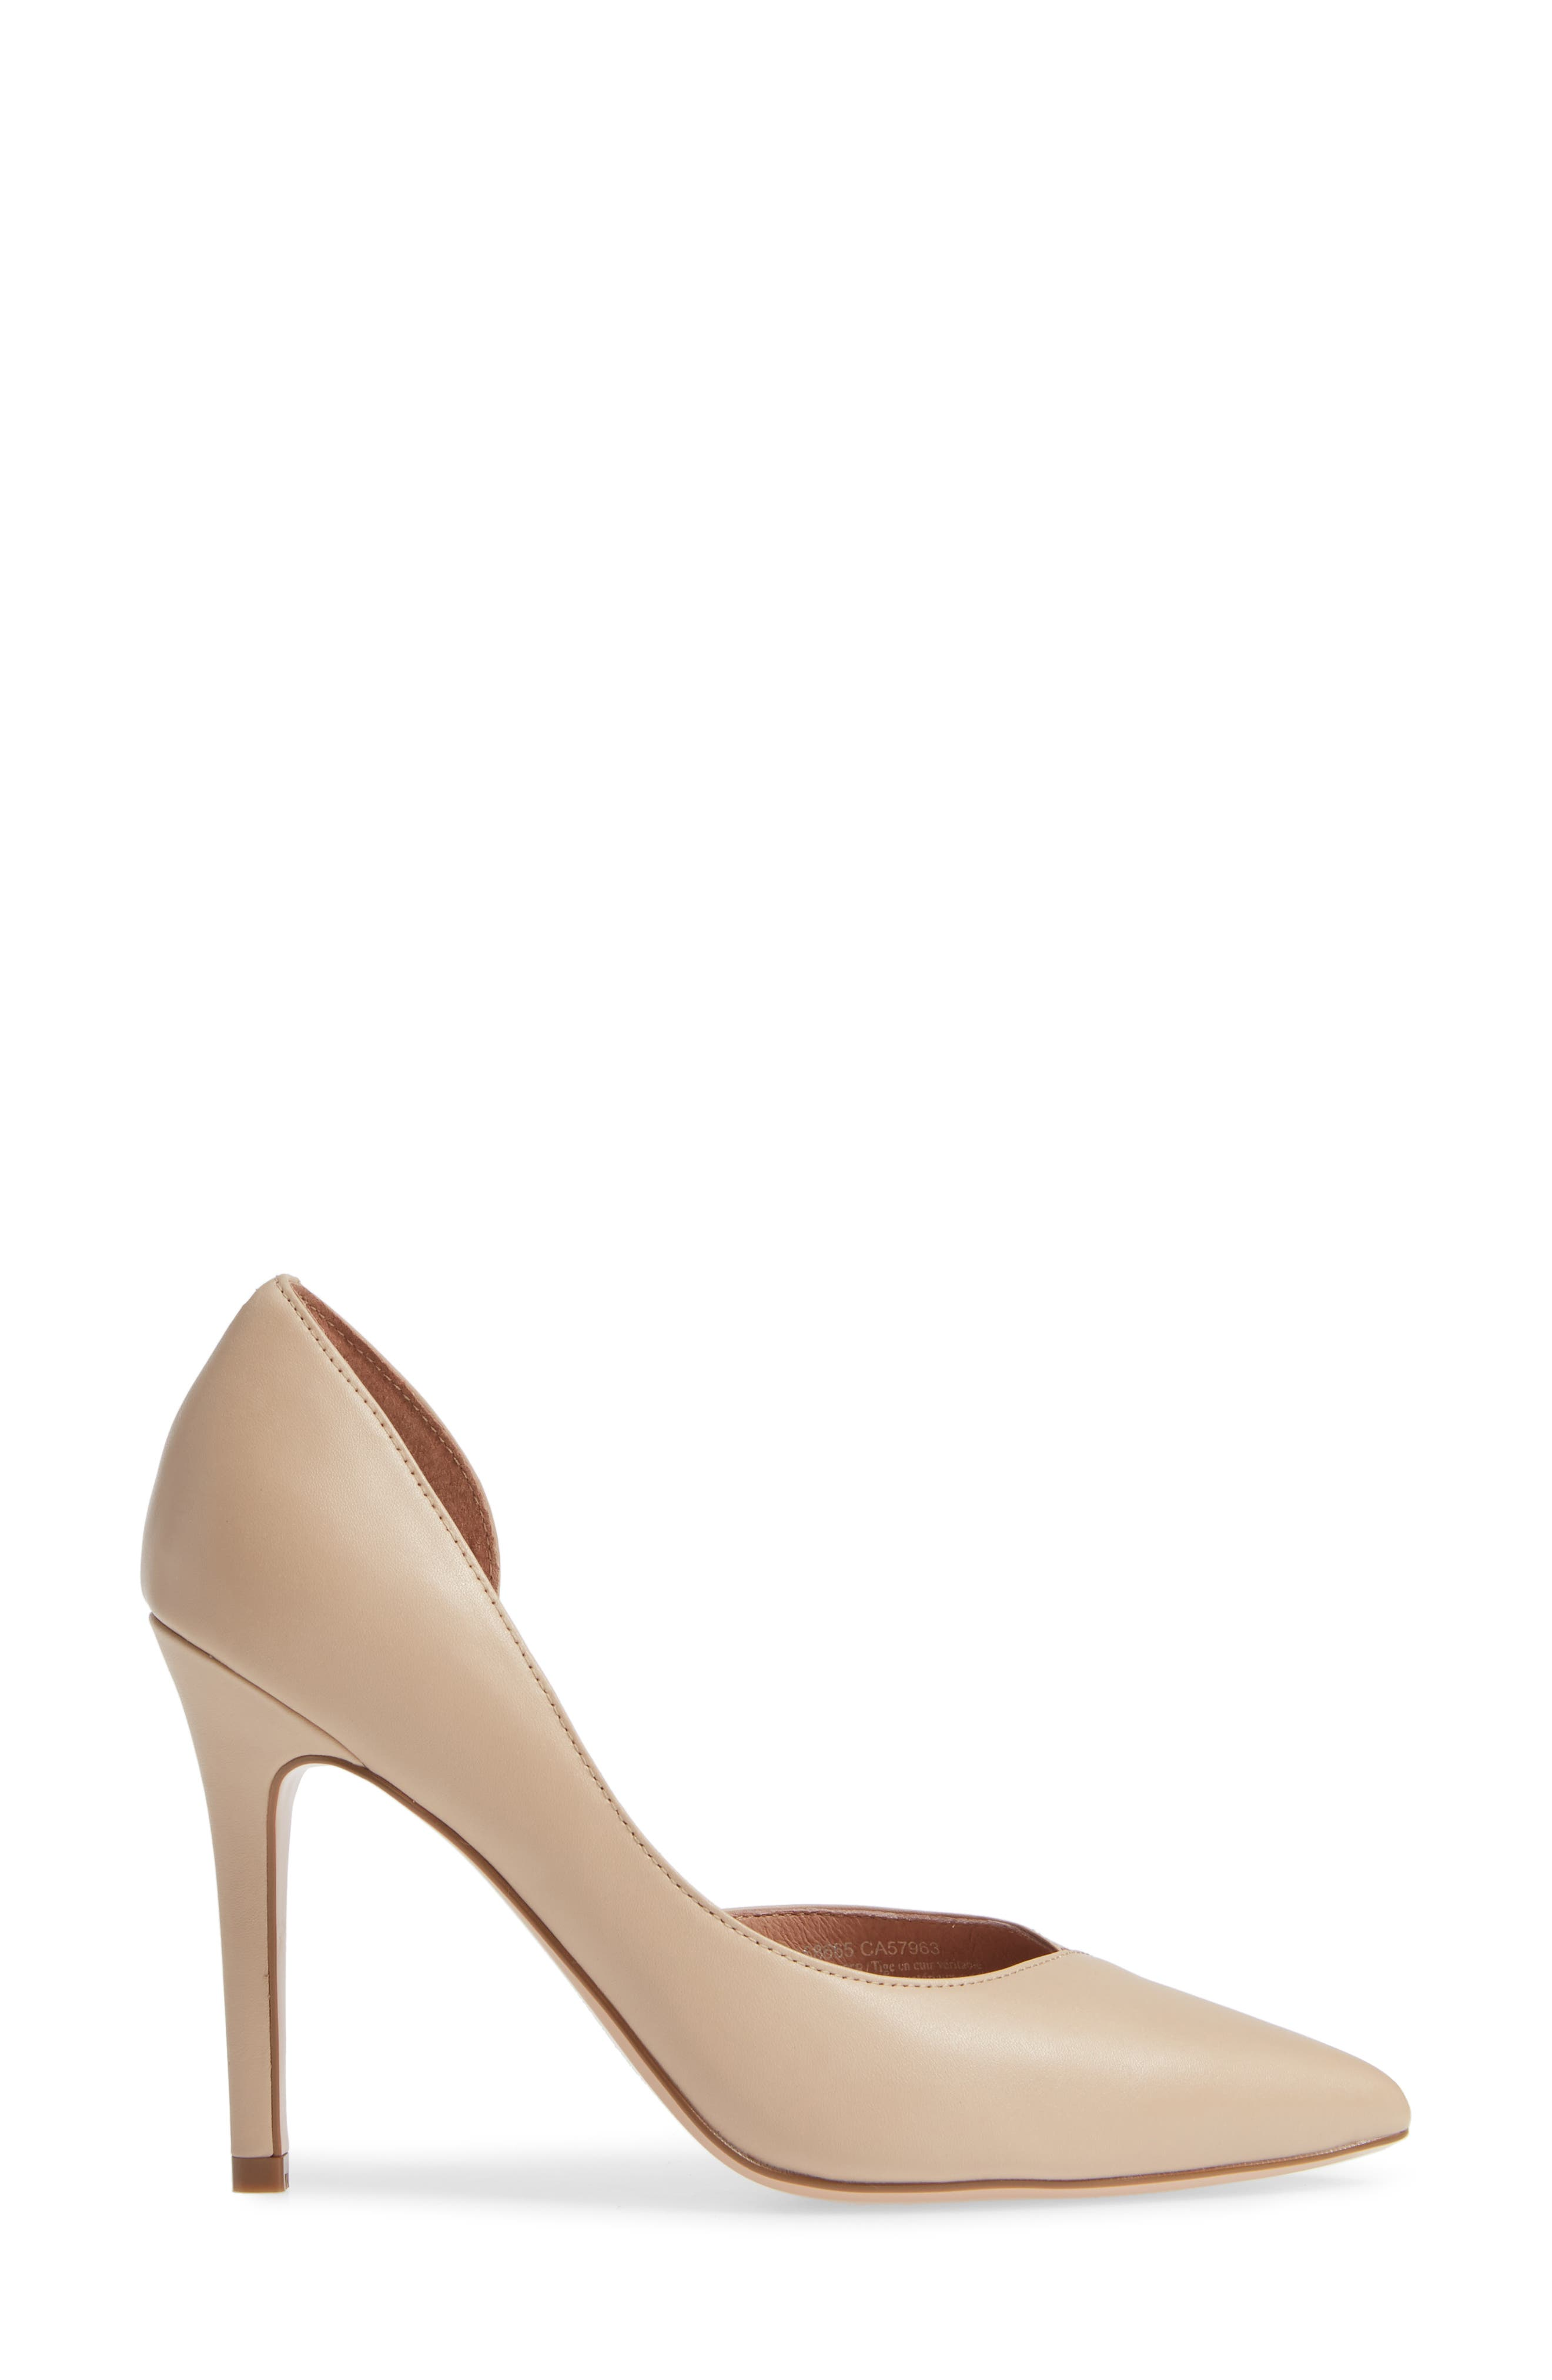 Autumn Pump,                             Alternate thumbnail 3, color,                             NUDE LEATHER